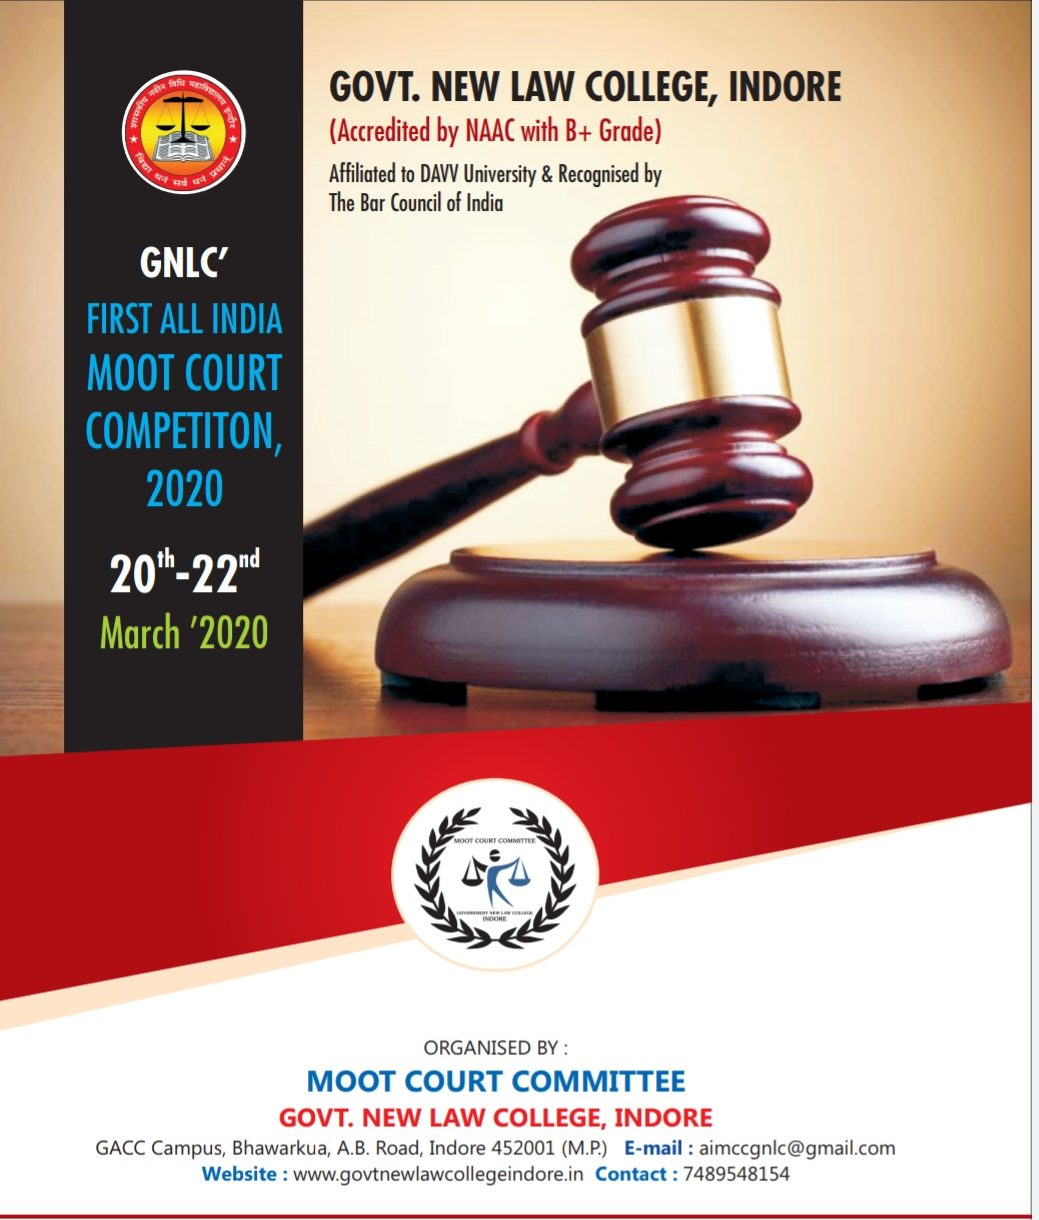 GNLC First All India Moot Court Competition 2020